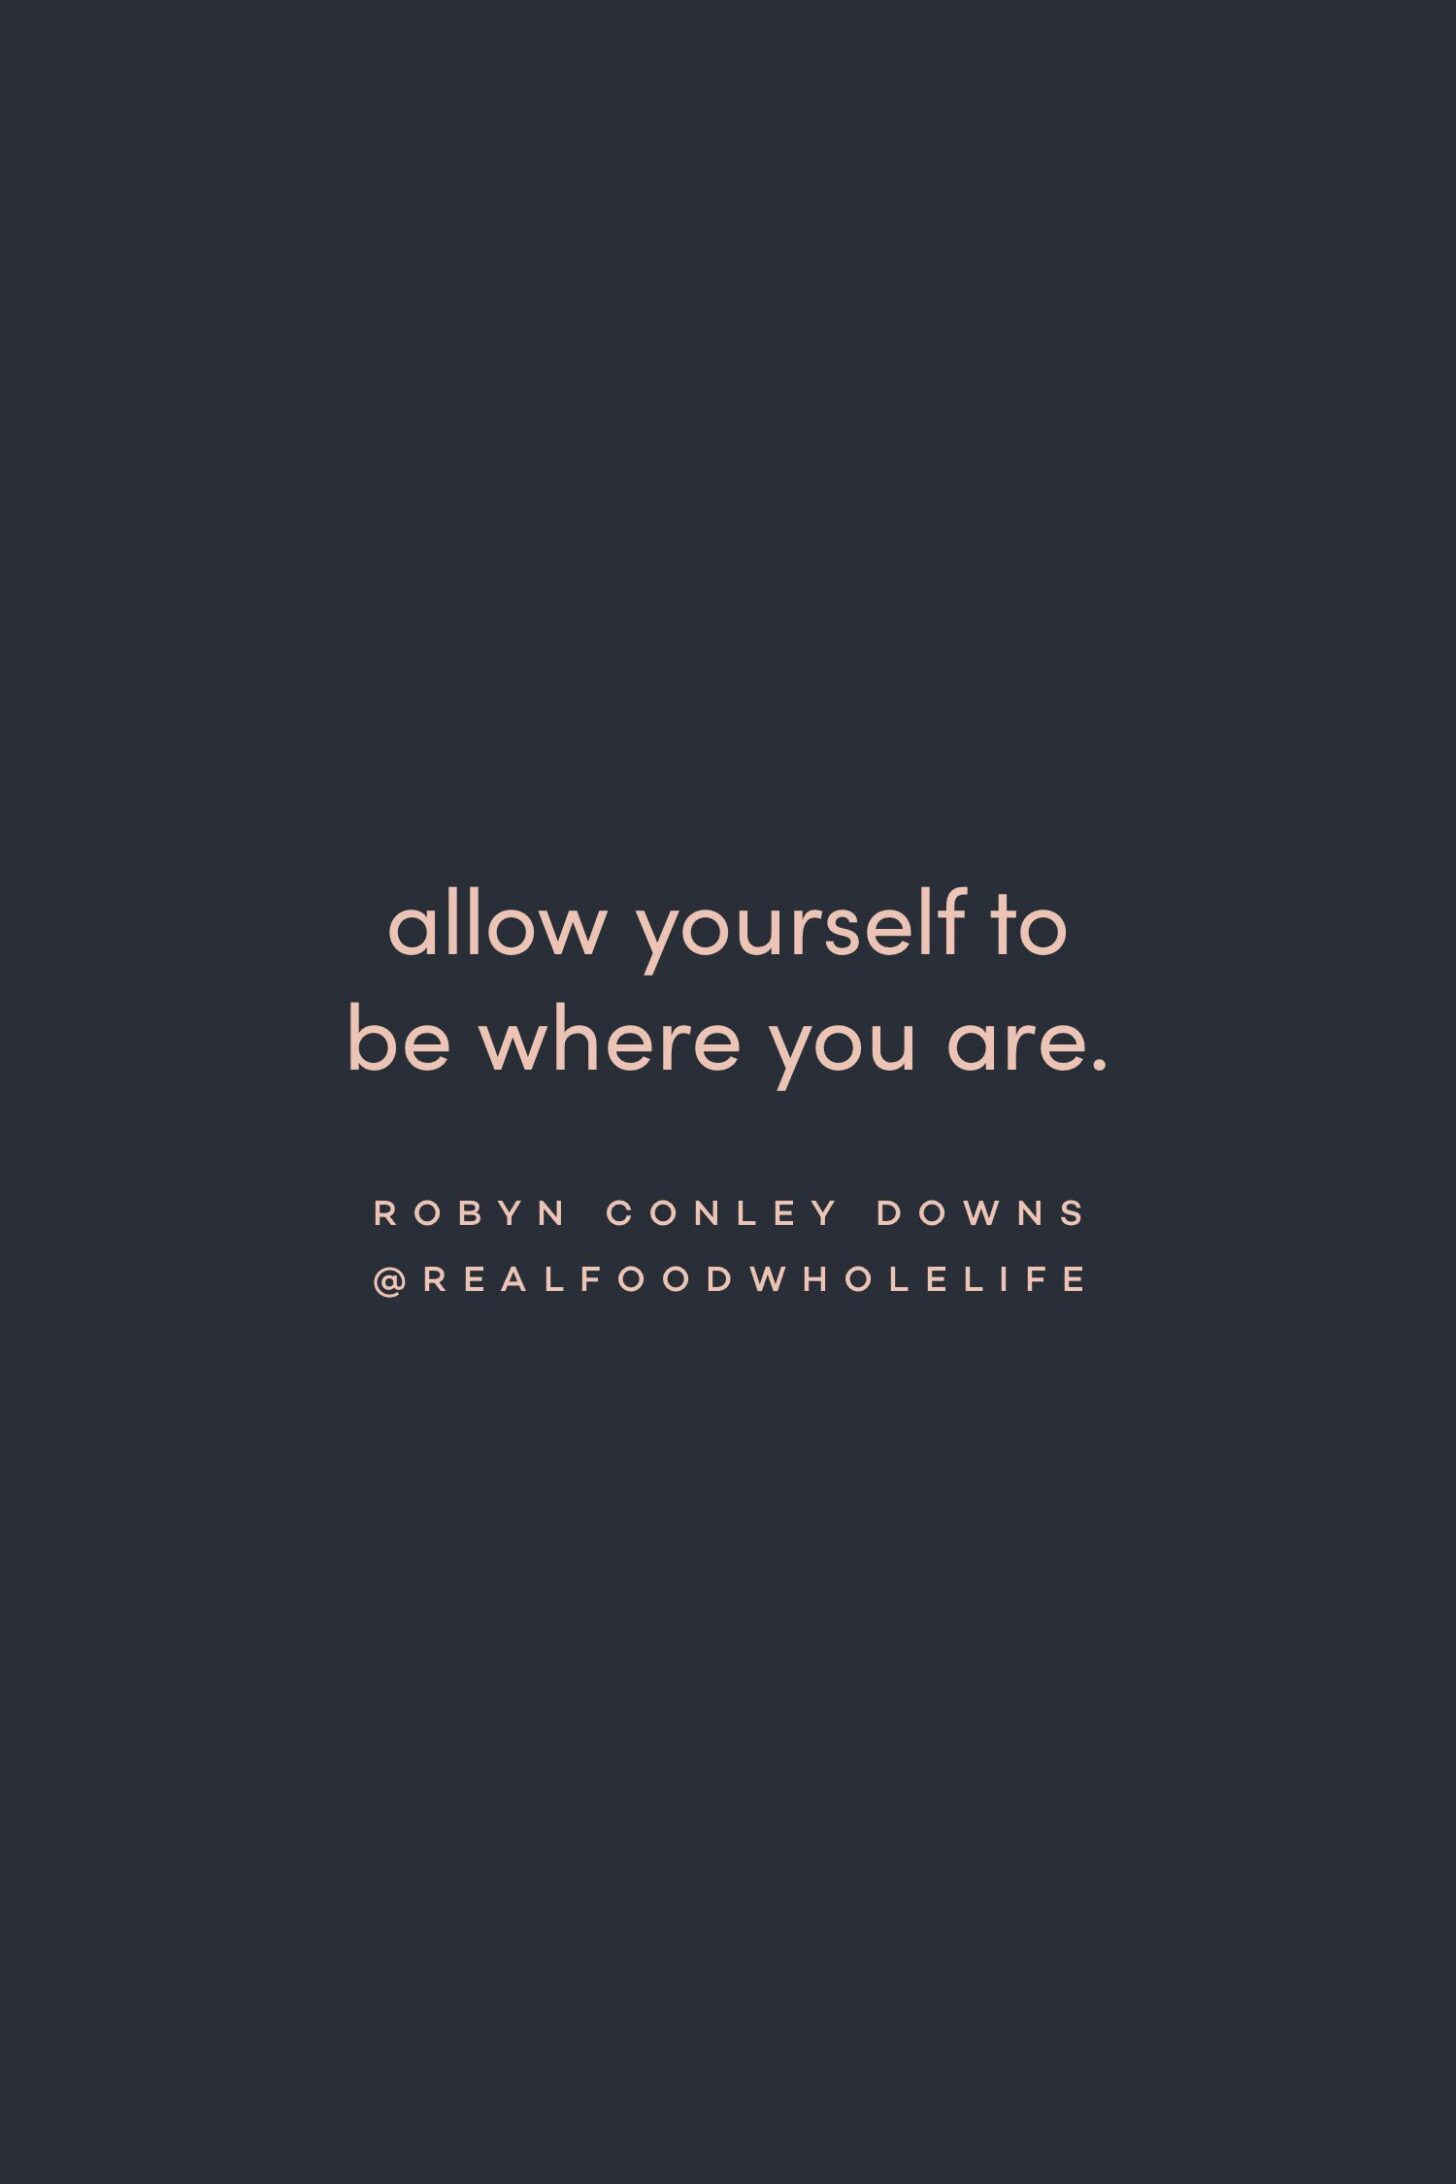 Quote on allowing yourself to be as you are by Robyn Conley Downs on the Feel Good Effect Podcast #realfoodwholelife #feelgoodeffectpodcast #motivationalquote #positivityquote #inspirationalquote #selfacceptancequote #selflovequote